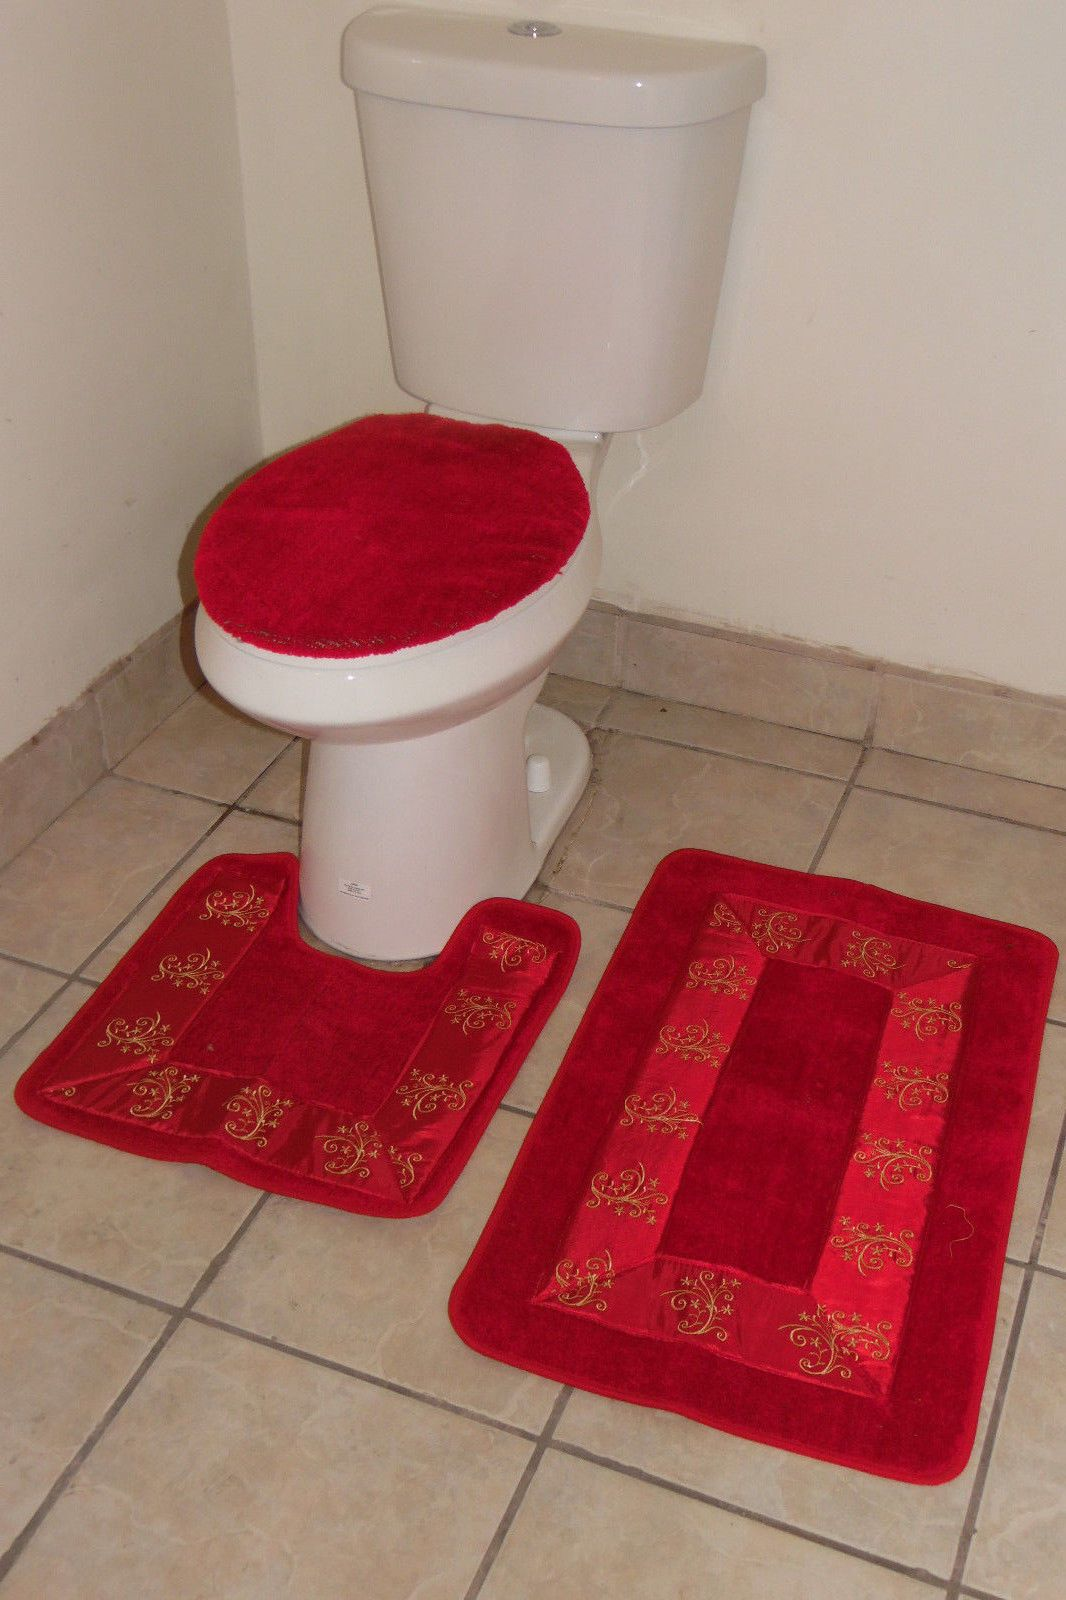 Bathmats Rugs And Toilet Covers 133696 3pc 5 Red Bathroom Set Contour Toilet Lid Cover Mats Rugs Embroidery Buy It Now Bathroom Red Mat Rugs Bathroom Sets